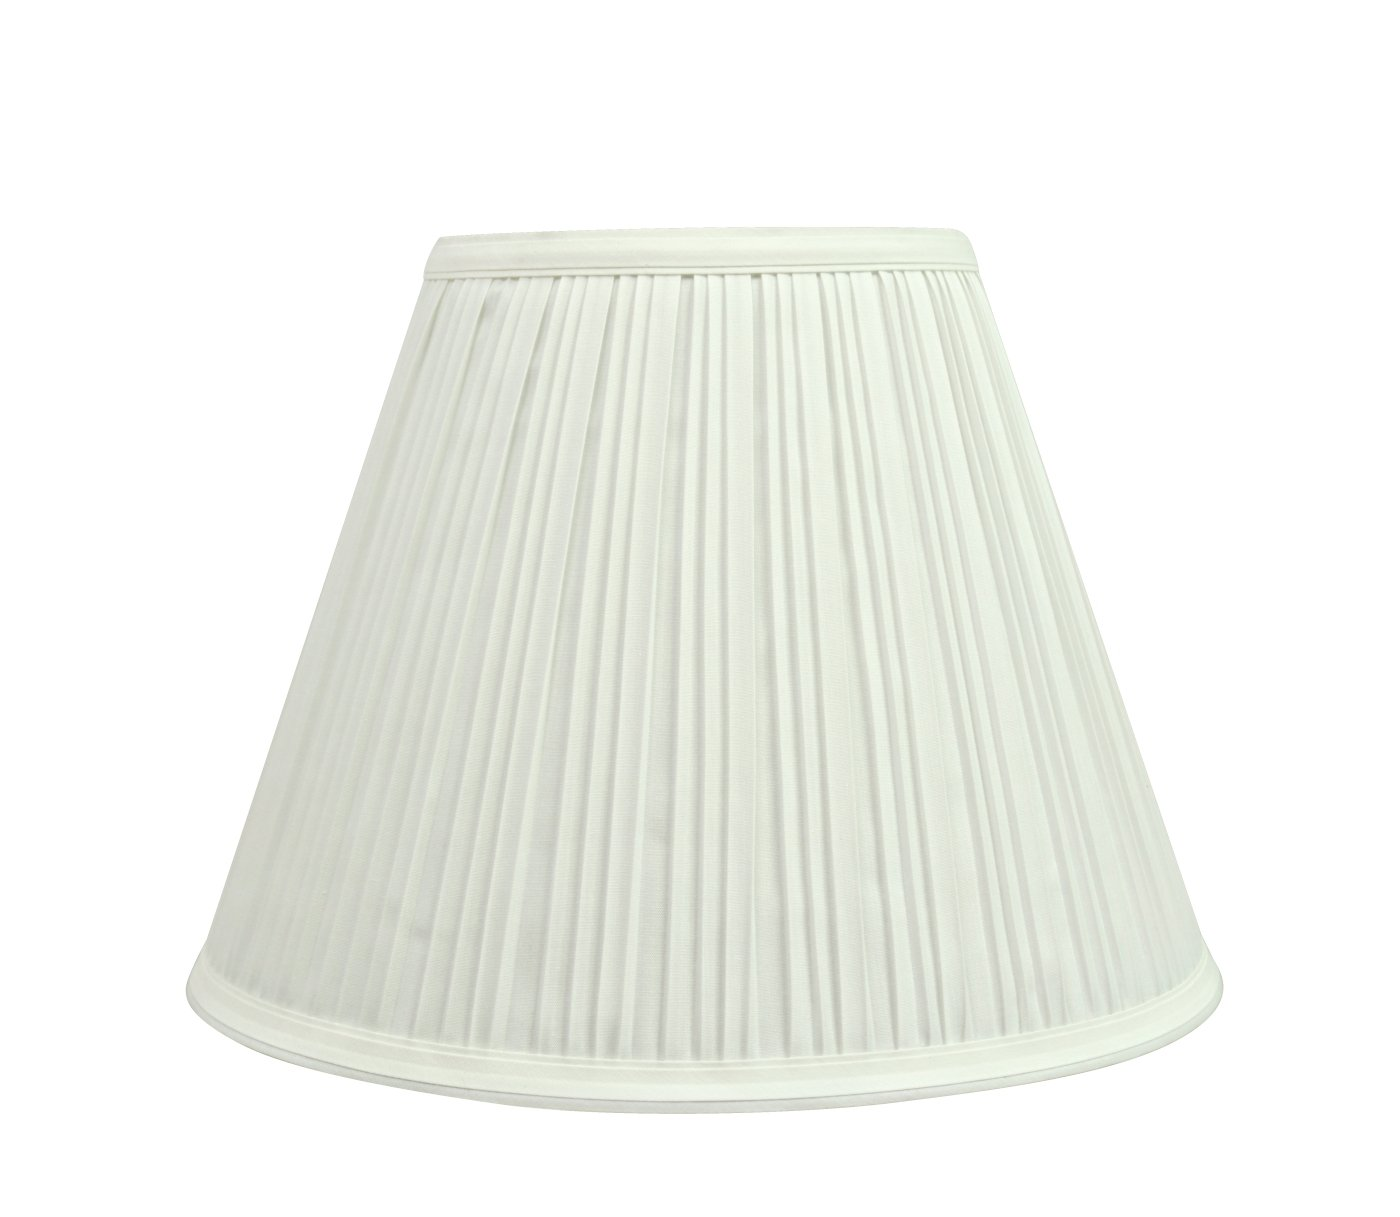 Aspen Creative 59101 Transitional Pleated Empire Shape UNO Construction Lamp Shade 10'' Wide, 5'' x 10'' x 8'', Off White